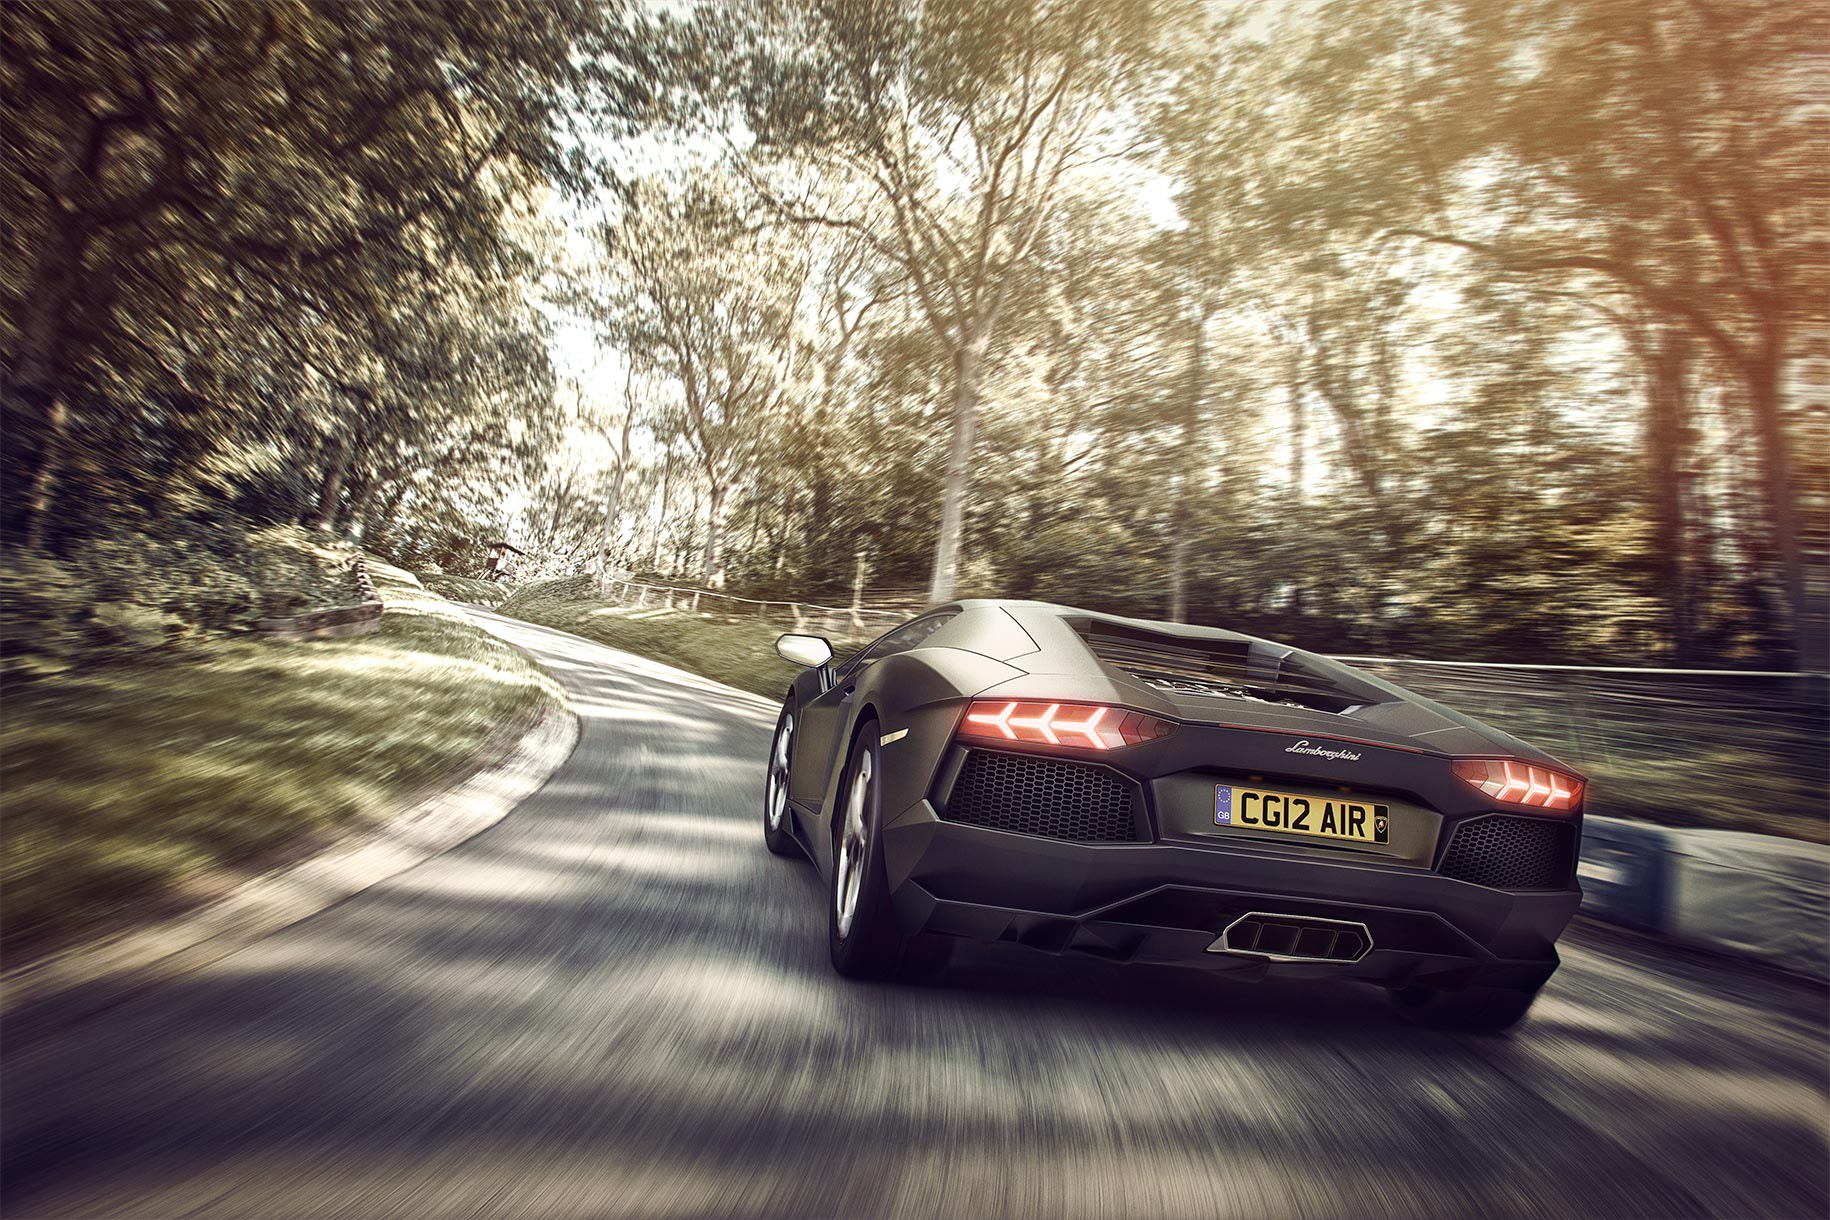 Photograph Lamborghini Aventador by Nigel Harniman on 500px